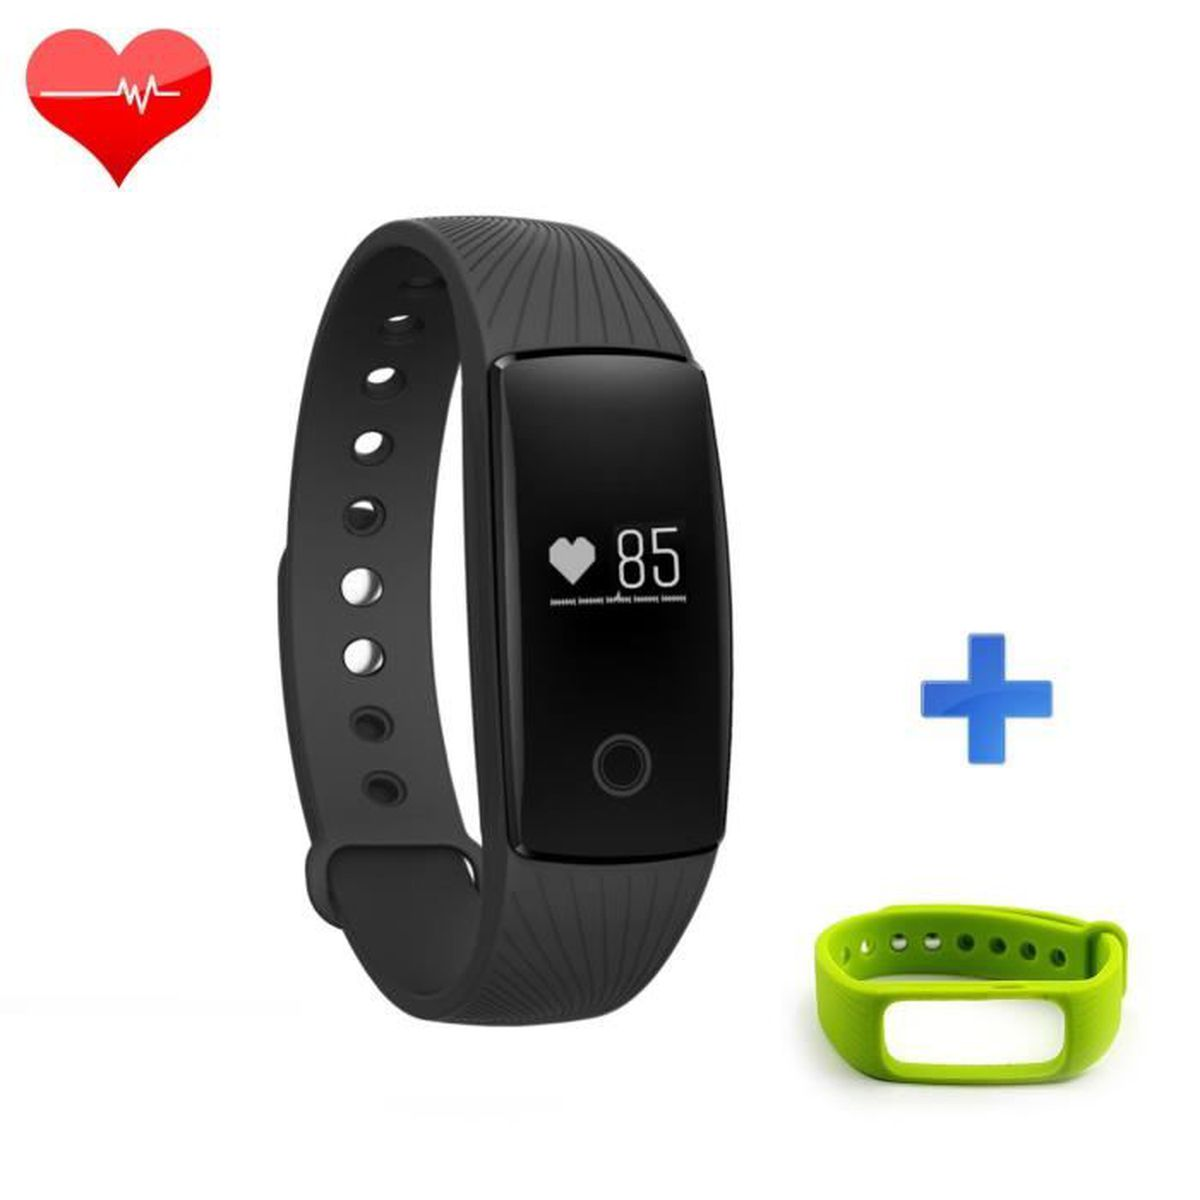 riversong fitness tracker wave hr avec moniteur noir verte bande de remplacement achat. Black Bedroom Furniture Sets. Home Design Ideas